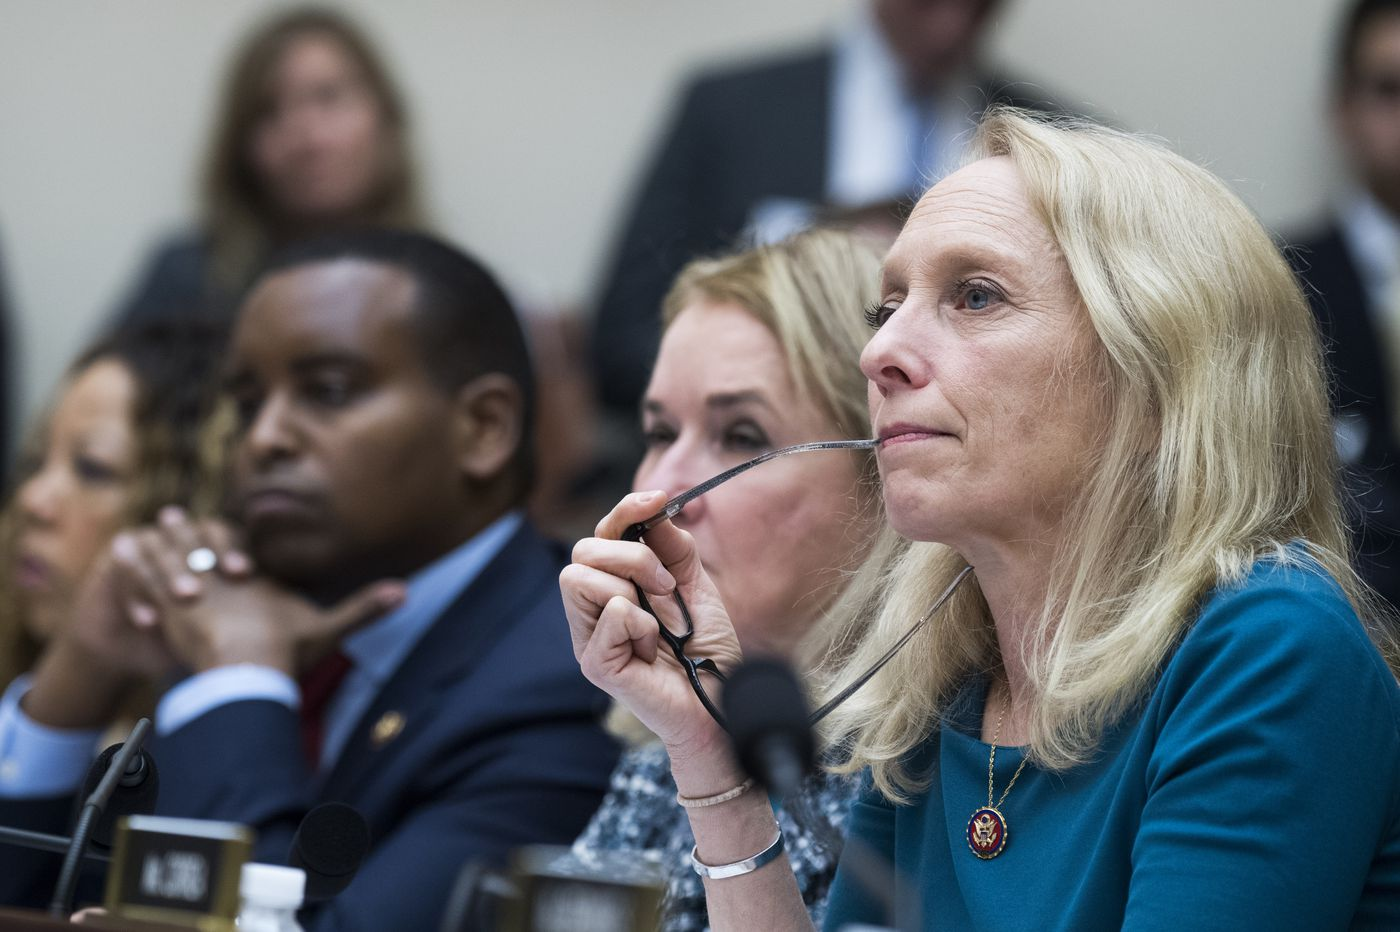 Rep. Mary Gay Scanlon of Swarthmore is ready for Robert Mueller | Maria Panaritis